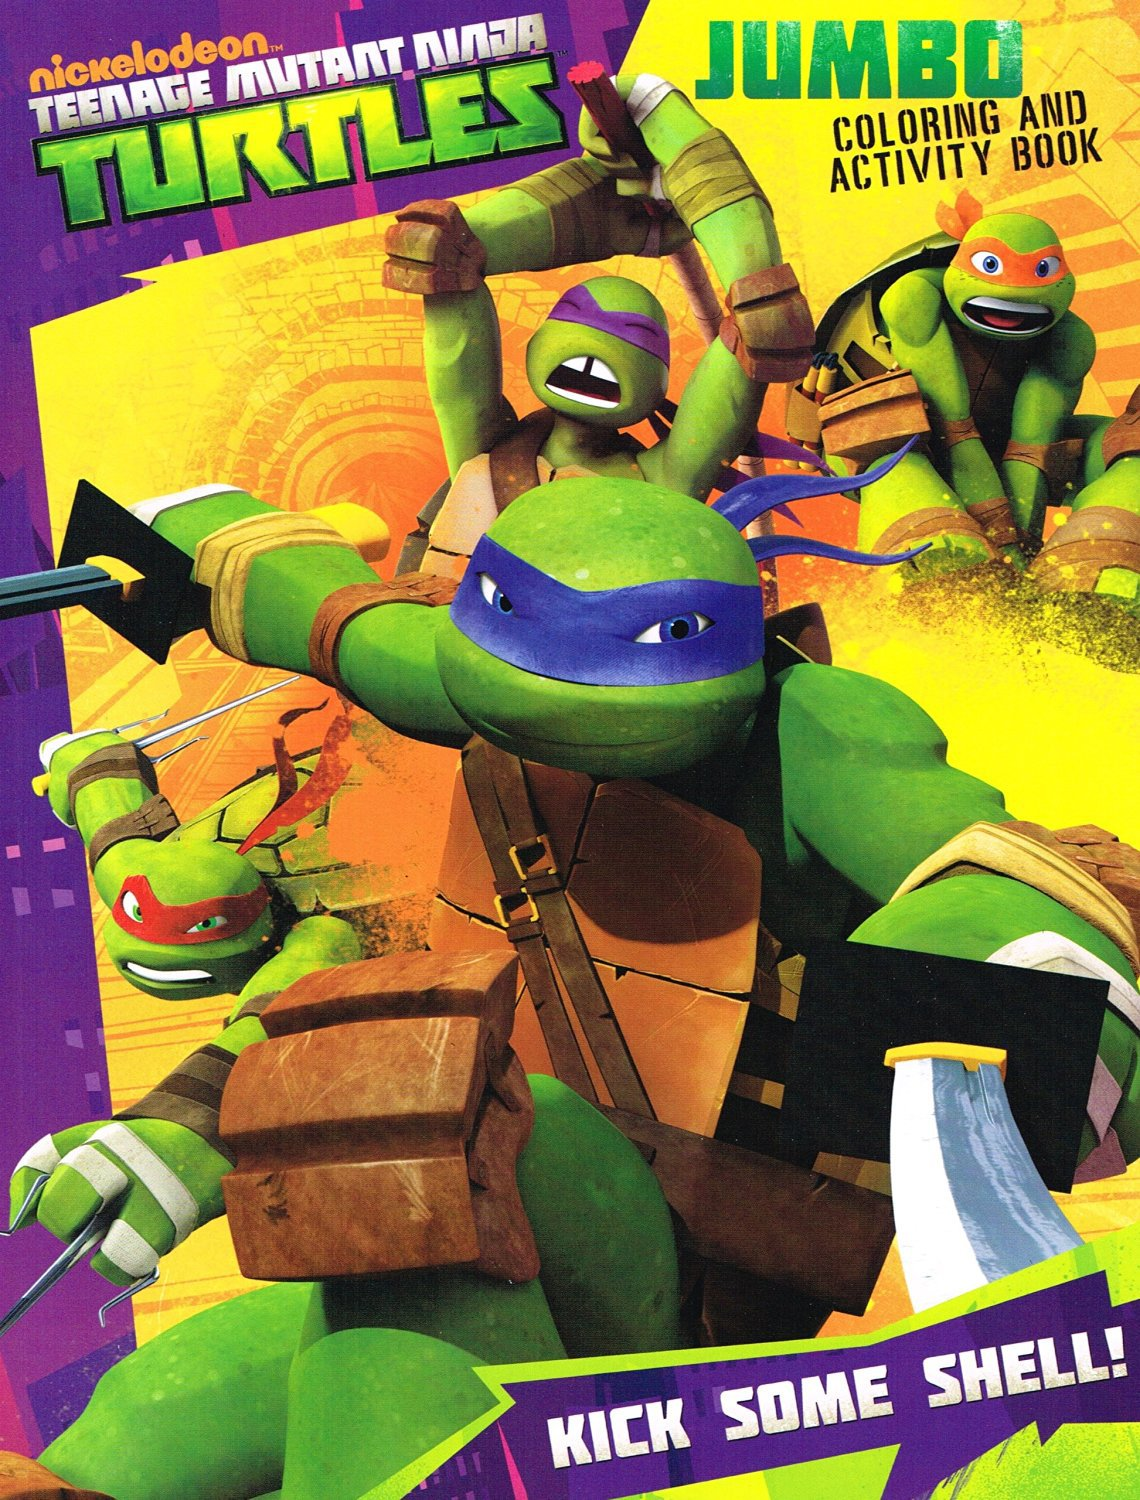 Teenage Mutant Ninja Turtles Jumbo Coloring Amp Activity Book Kick Some Shell